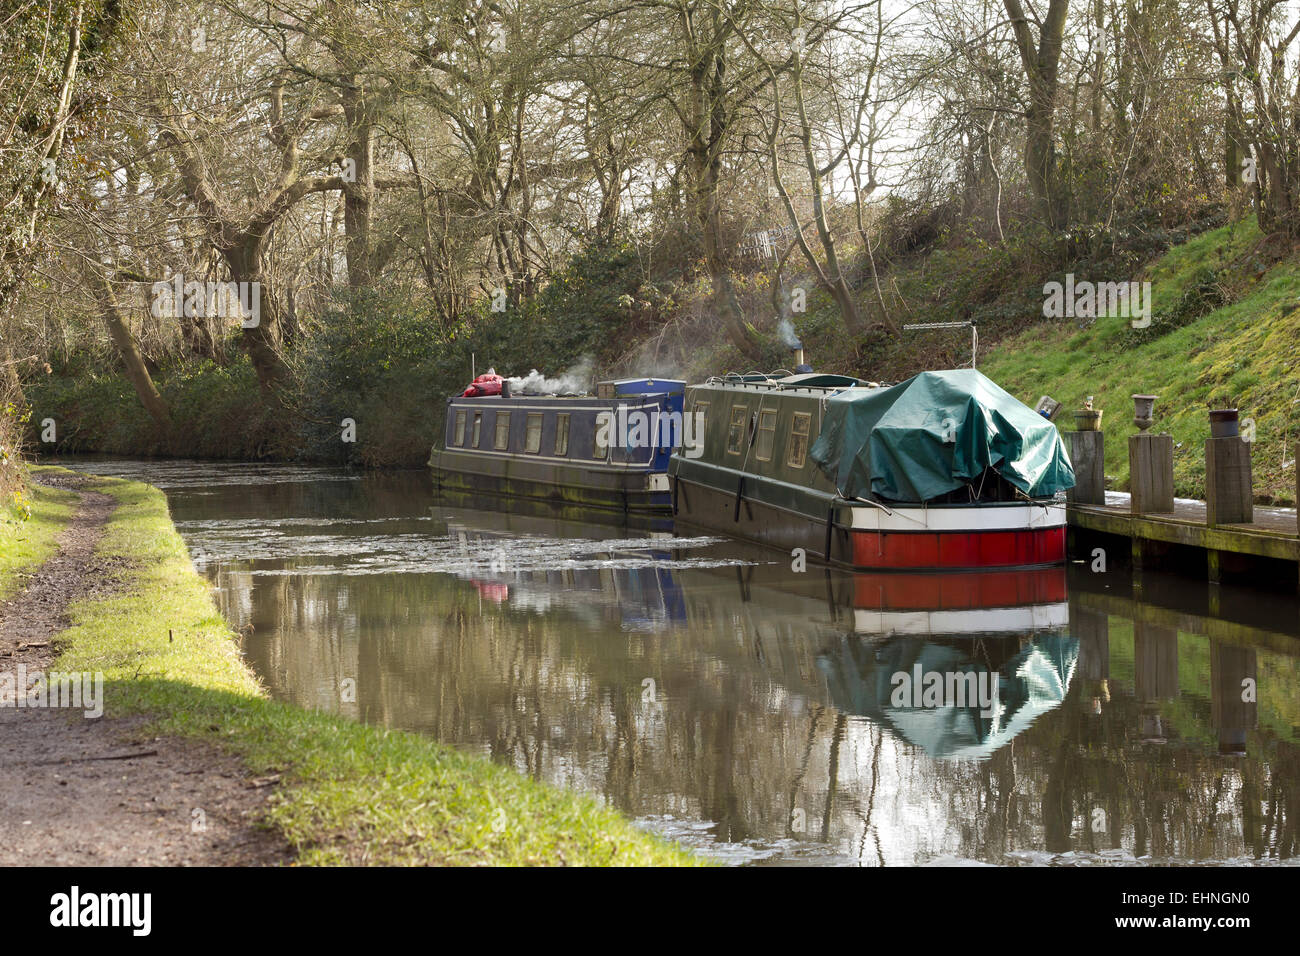 Canal boats on a cold winter's day, with smoke coming from their chimneys, moored on a quiet country canal in - Stock Image